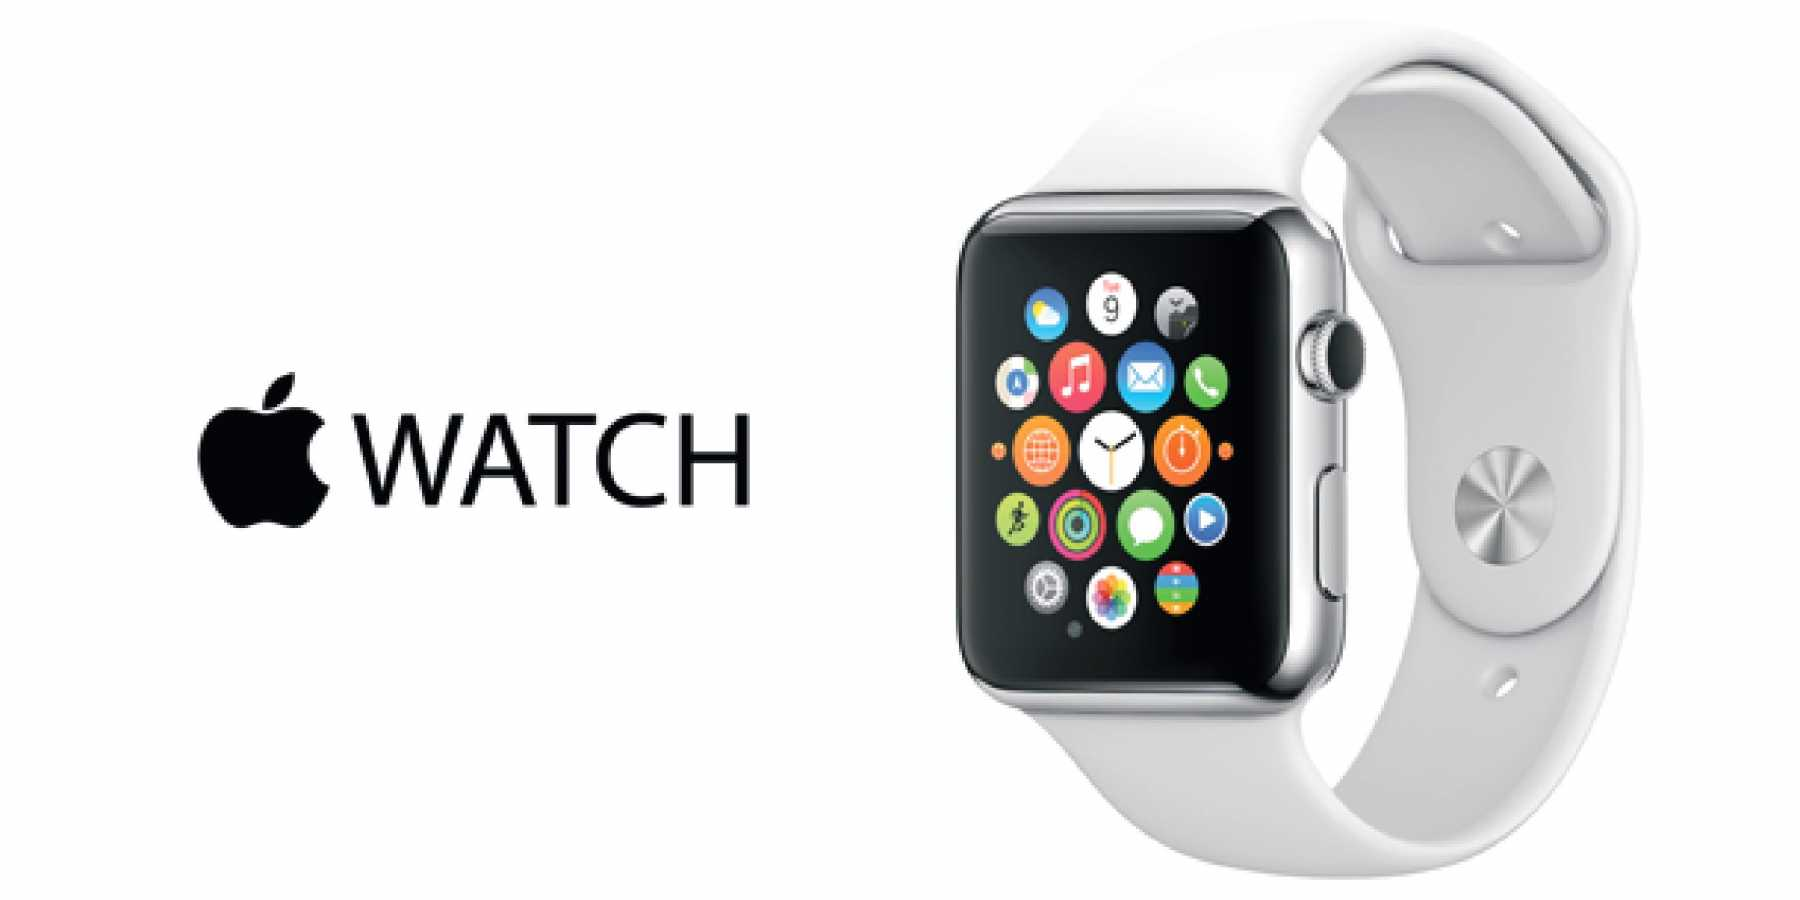 New Apple Watch May Not Come In March, But Later This Year | Apple Watch